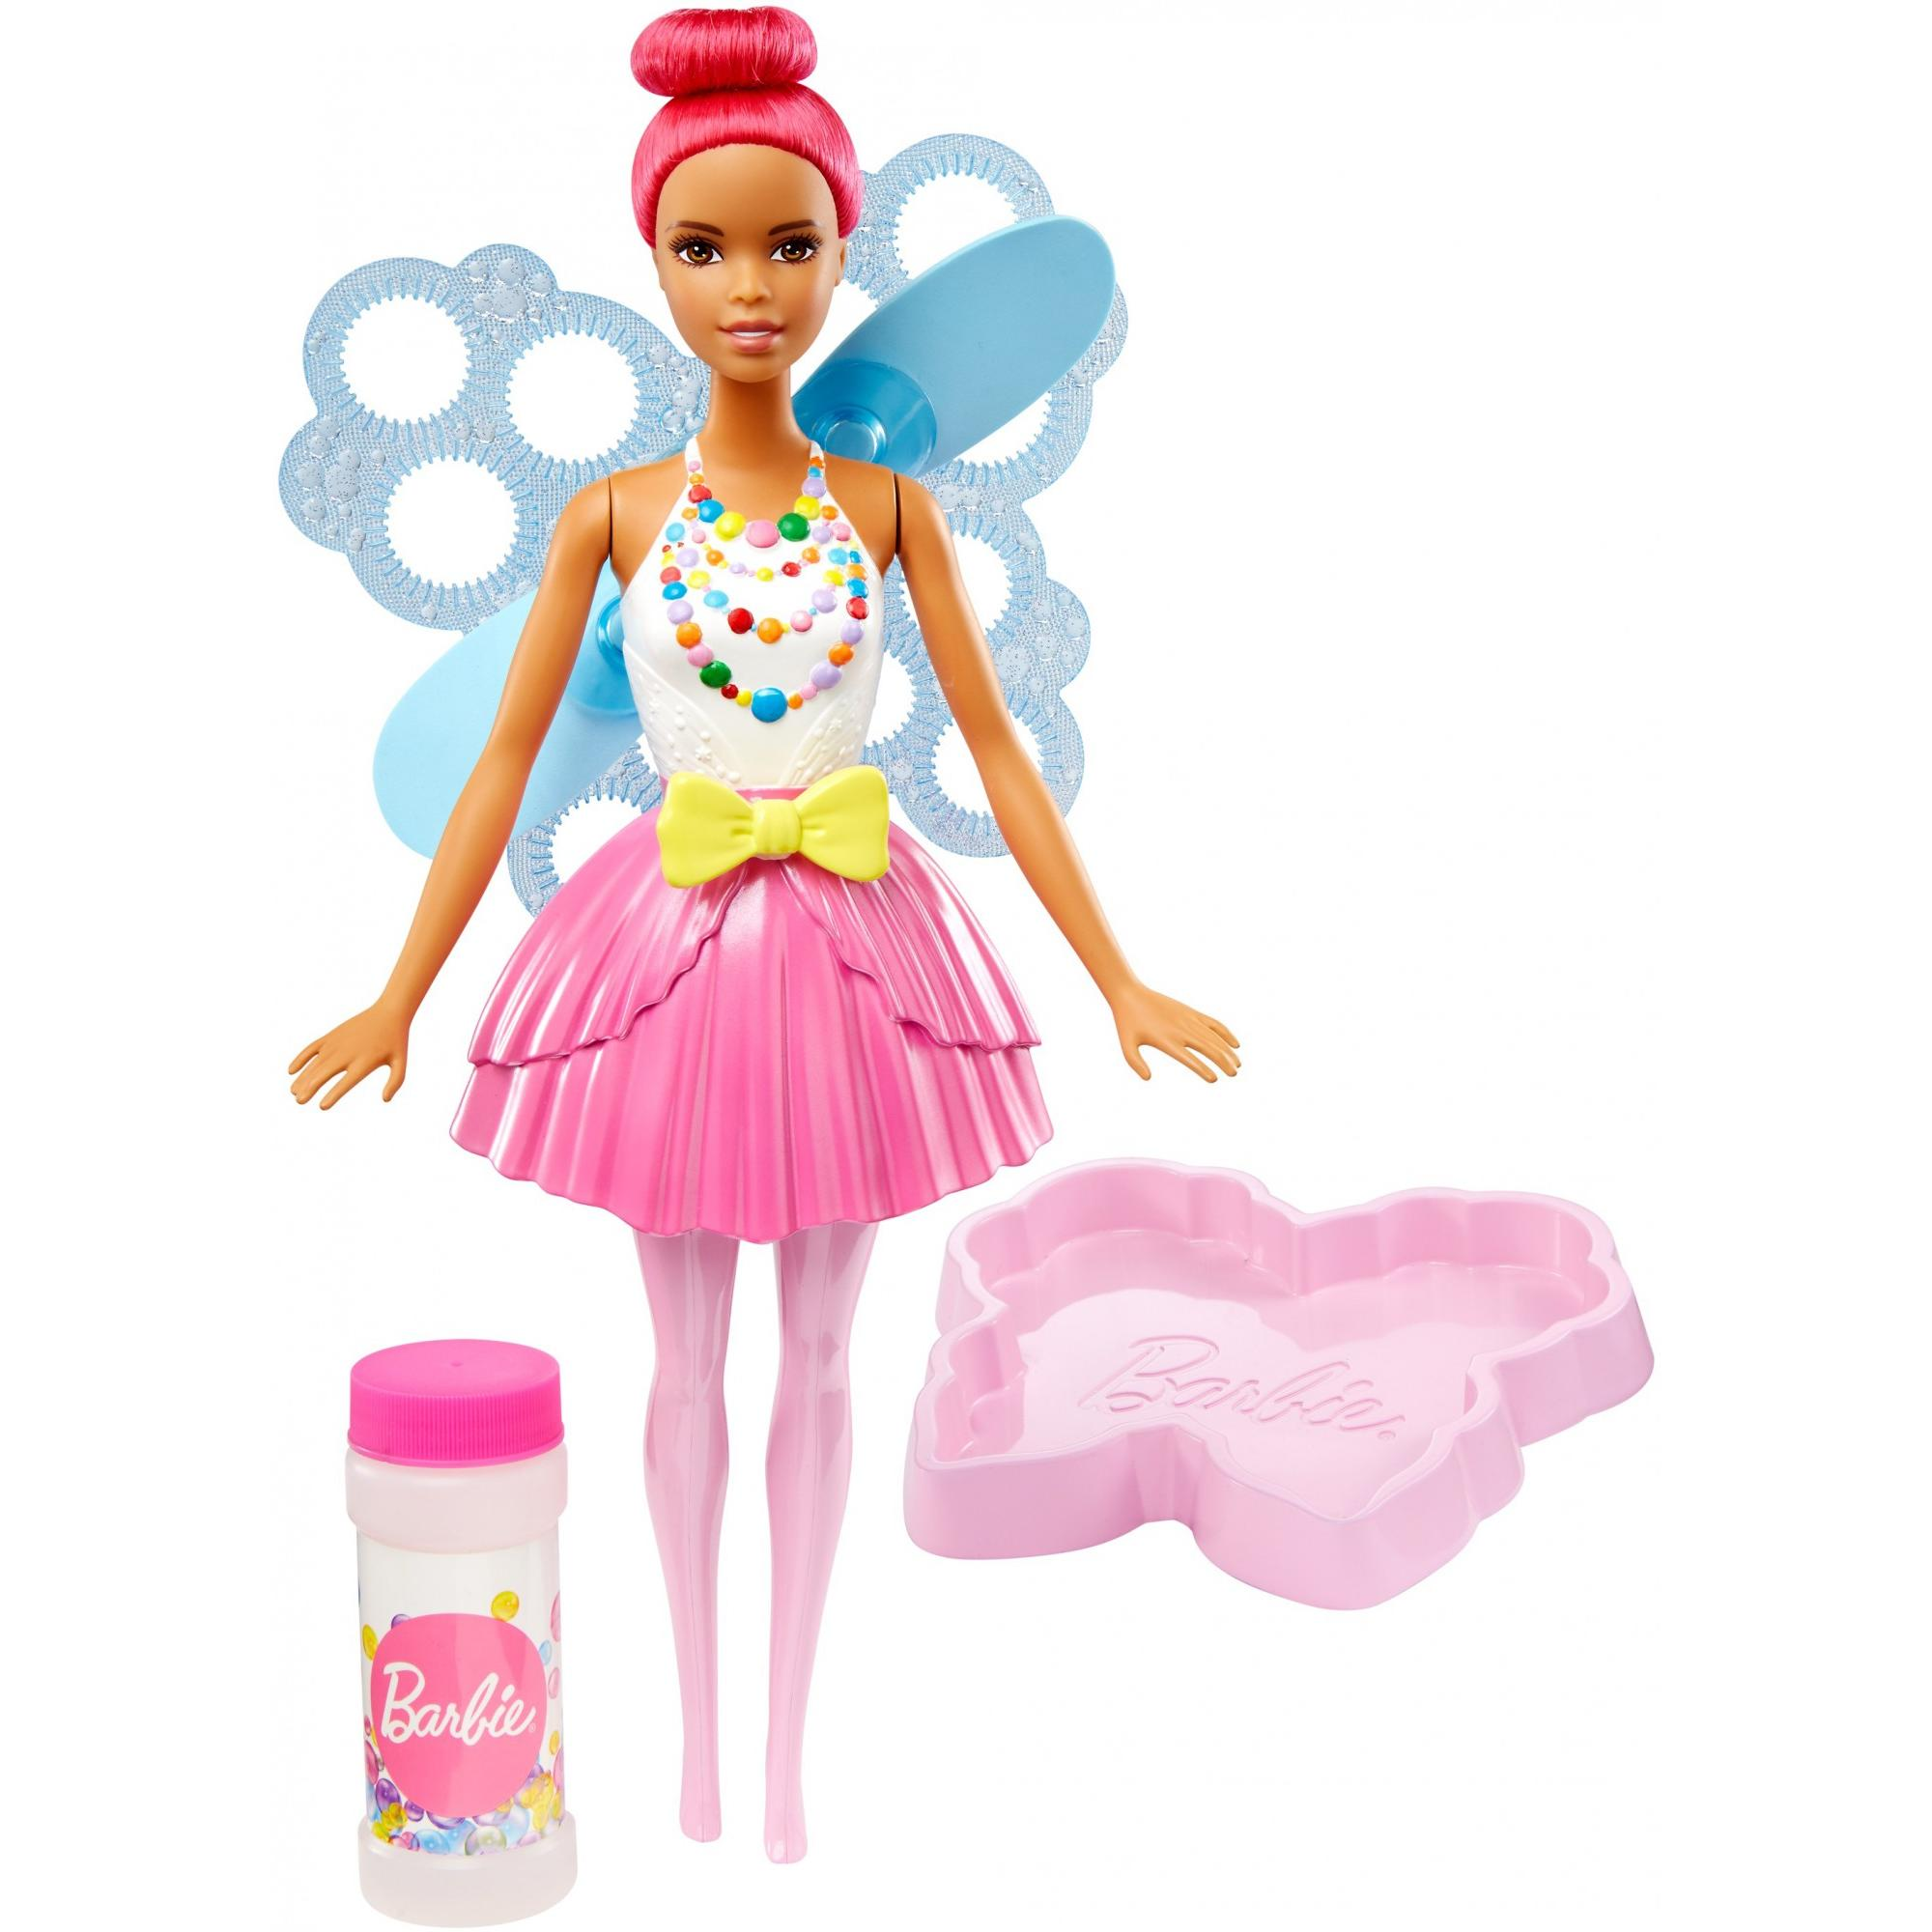 Barbie Dreamtopia Bubbletastic Pink Fairy Doll, African American by MATTEL INC.